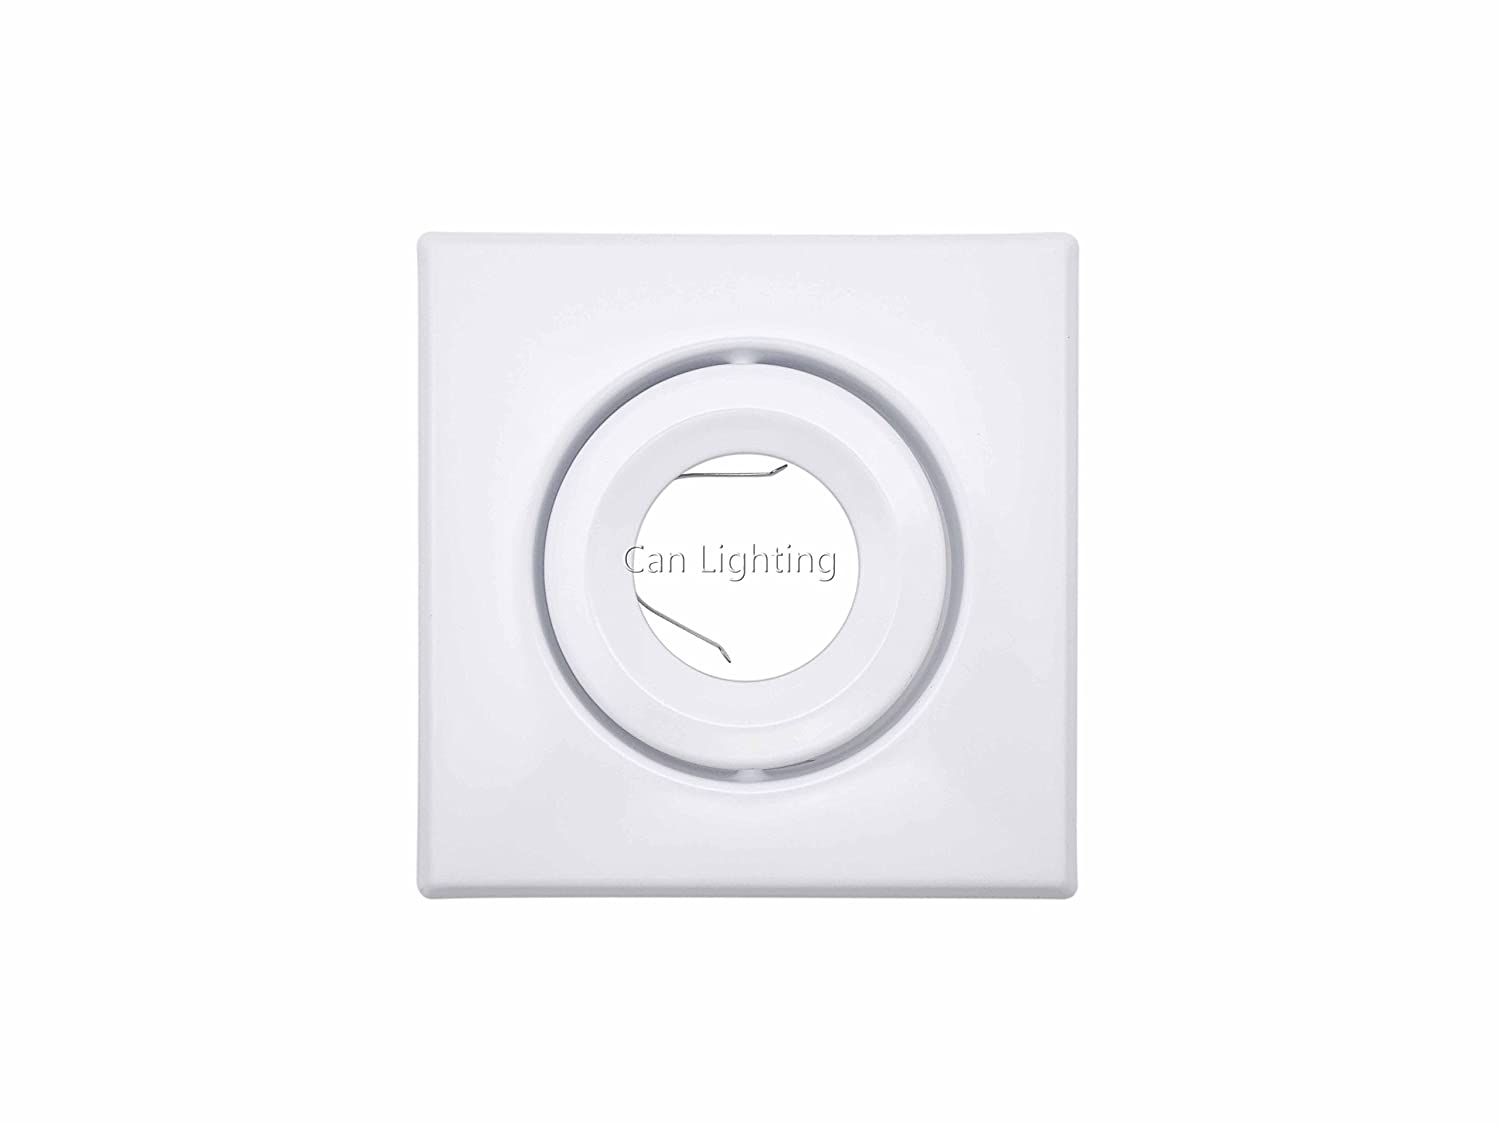 Pack of 2 Pieces, Recessed Lighting, 4 inch PAR16/MR16/GU10 Trim, Gimbal, Square White CAN LIGHTING